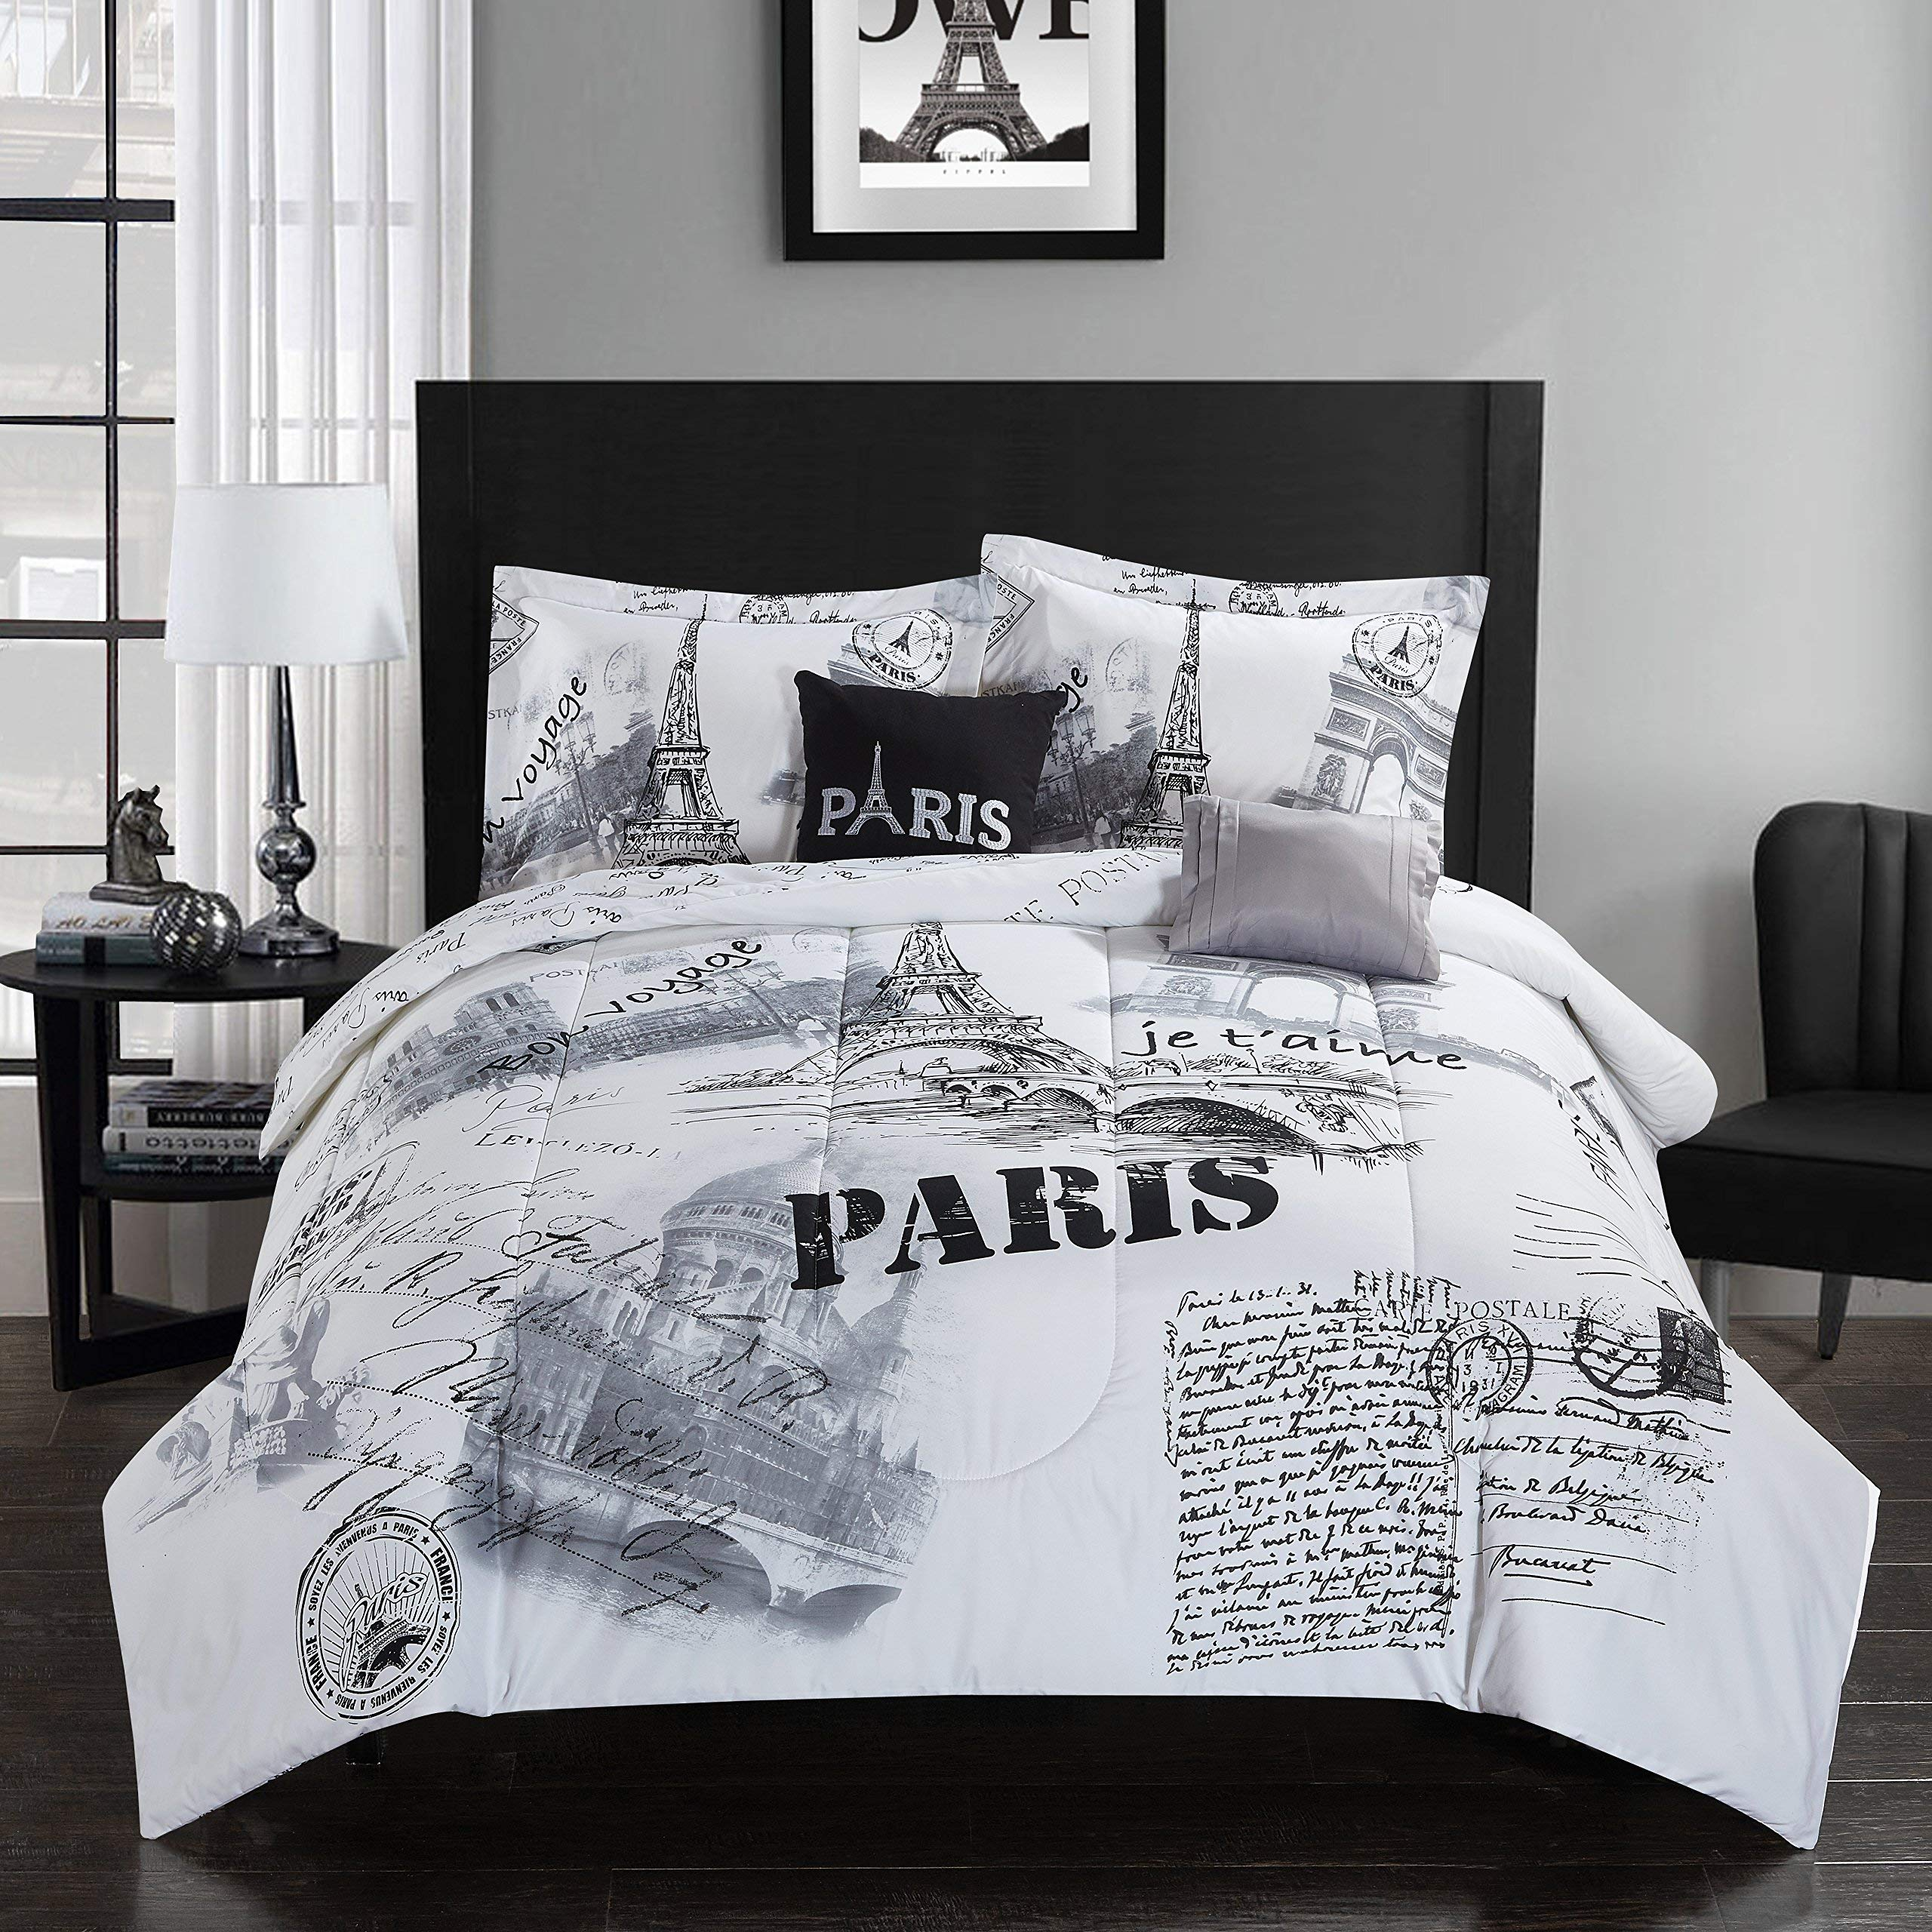 CASA Paris Comforter Set, Full/Queen, 5 Piece by CASA (Image #1)